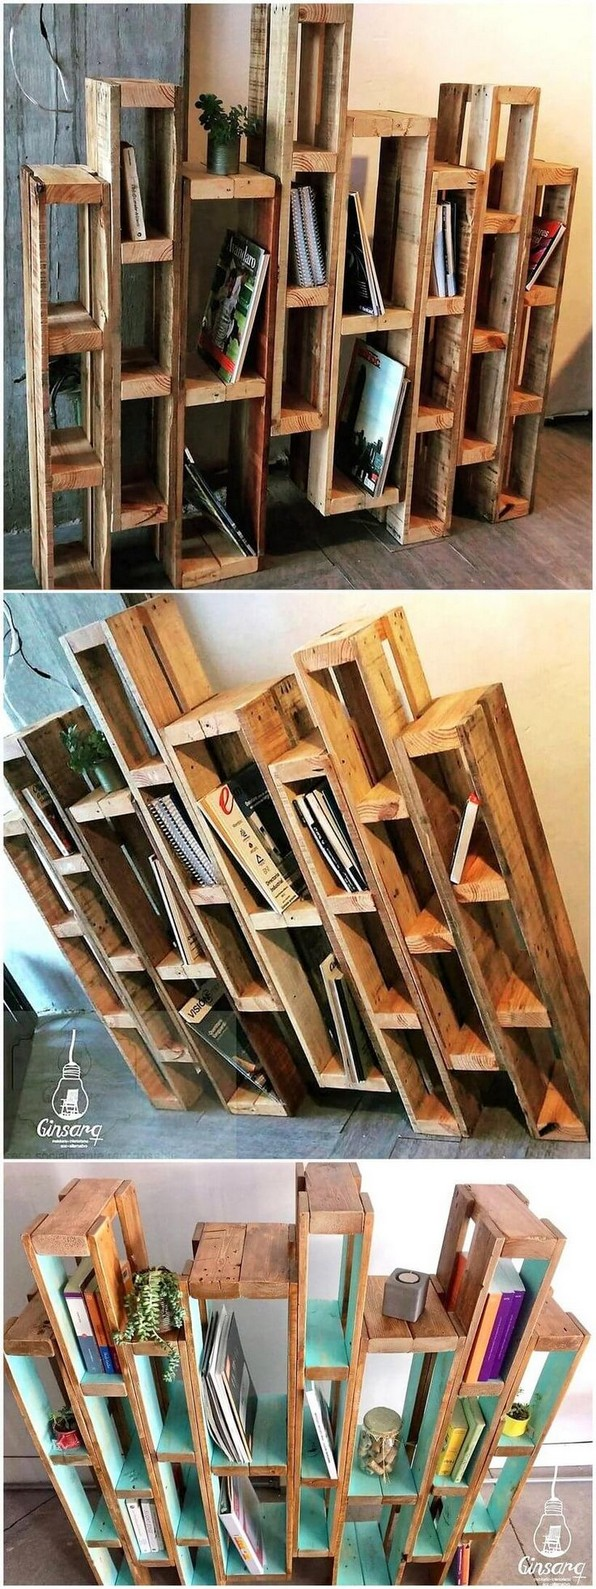 19 Amazing Bookshelf Design Ideas – Essential Furniture In Your Home 01